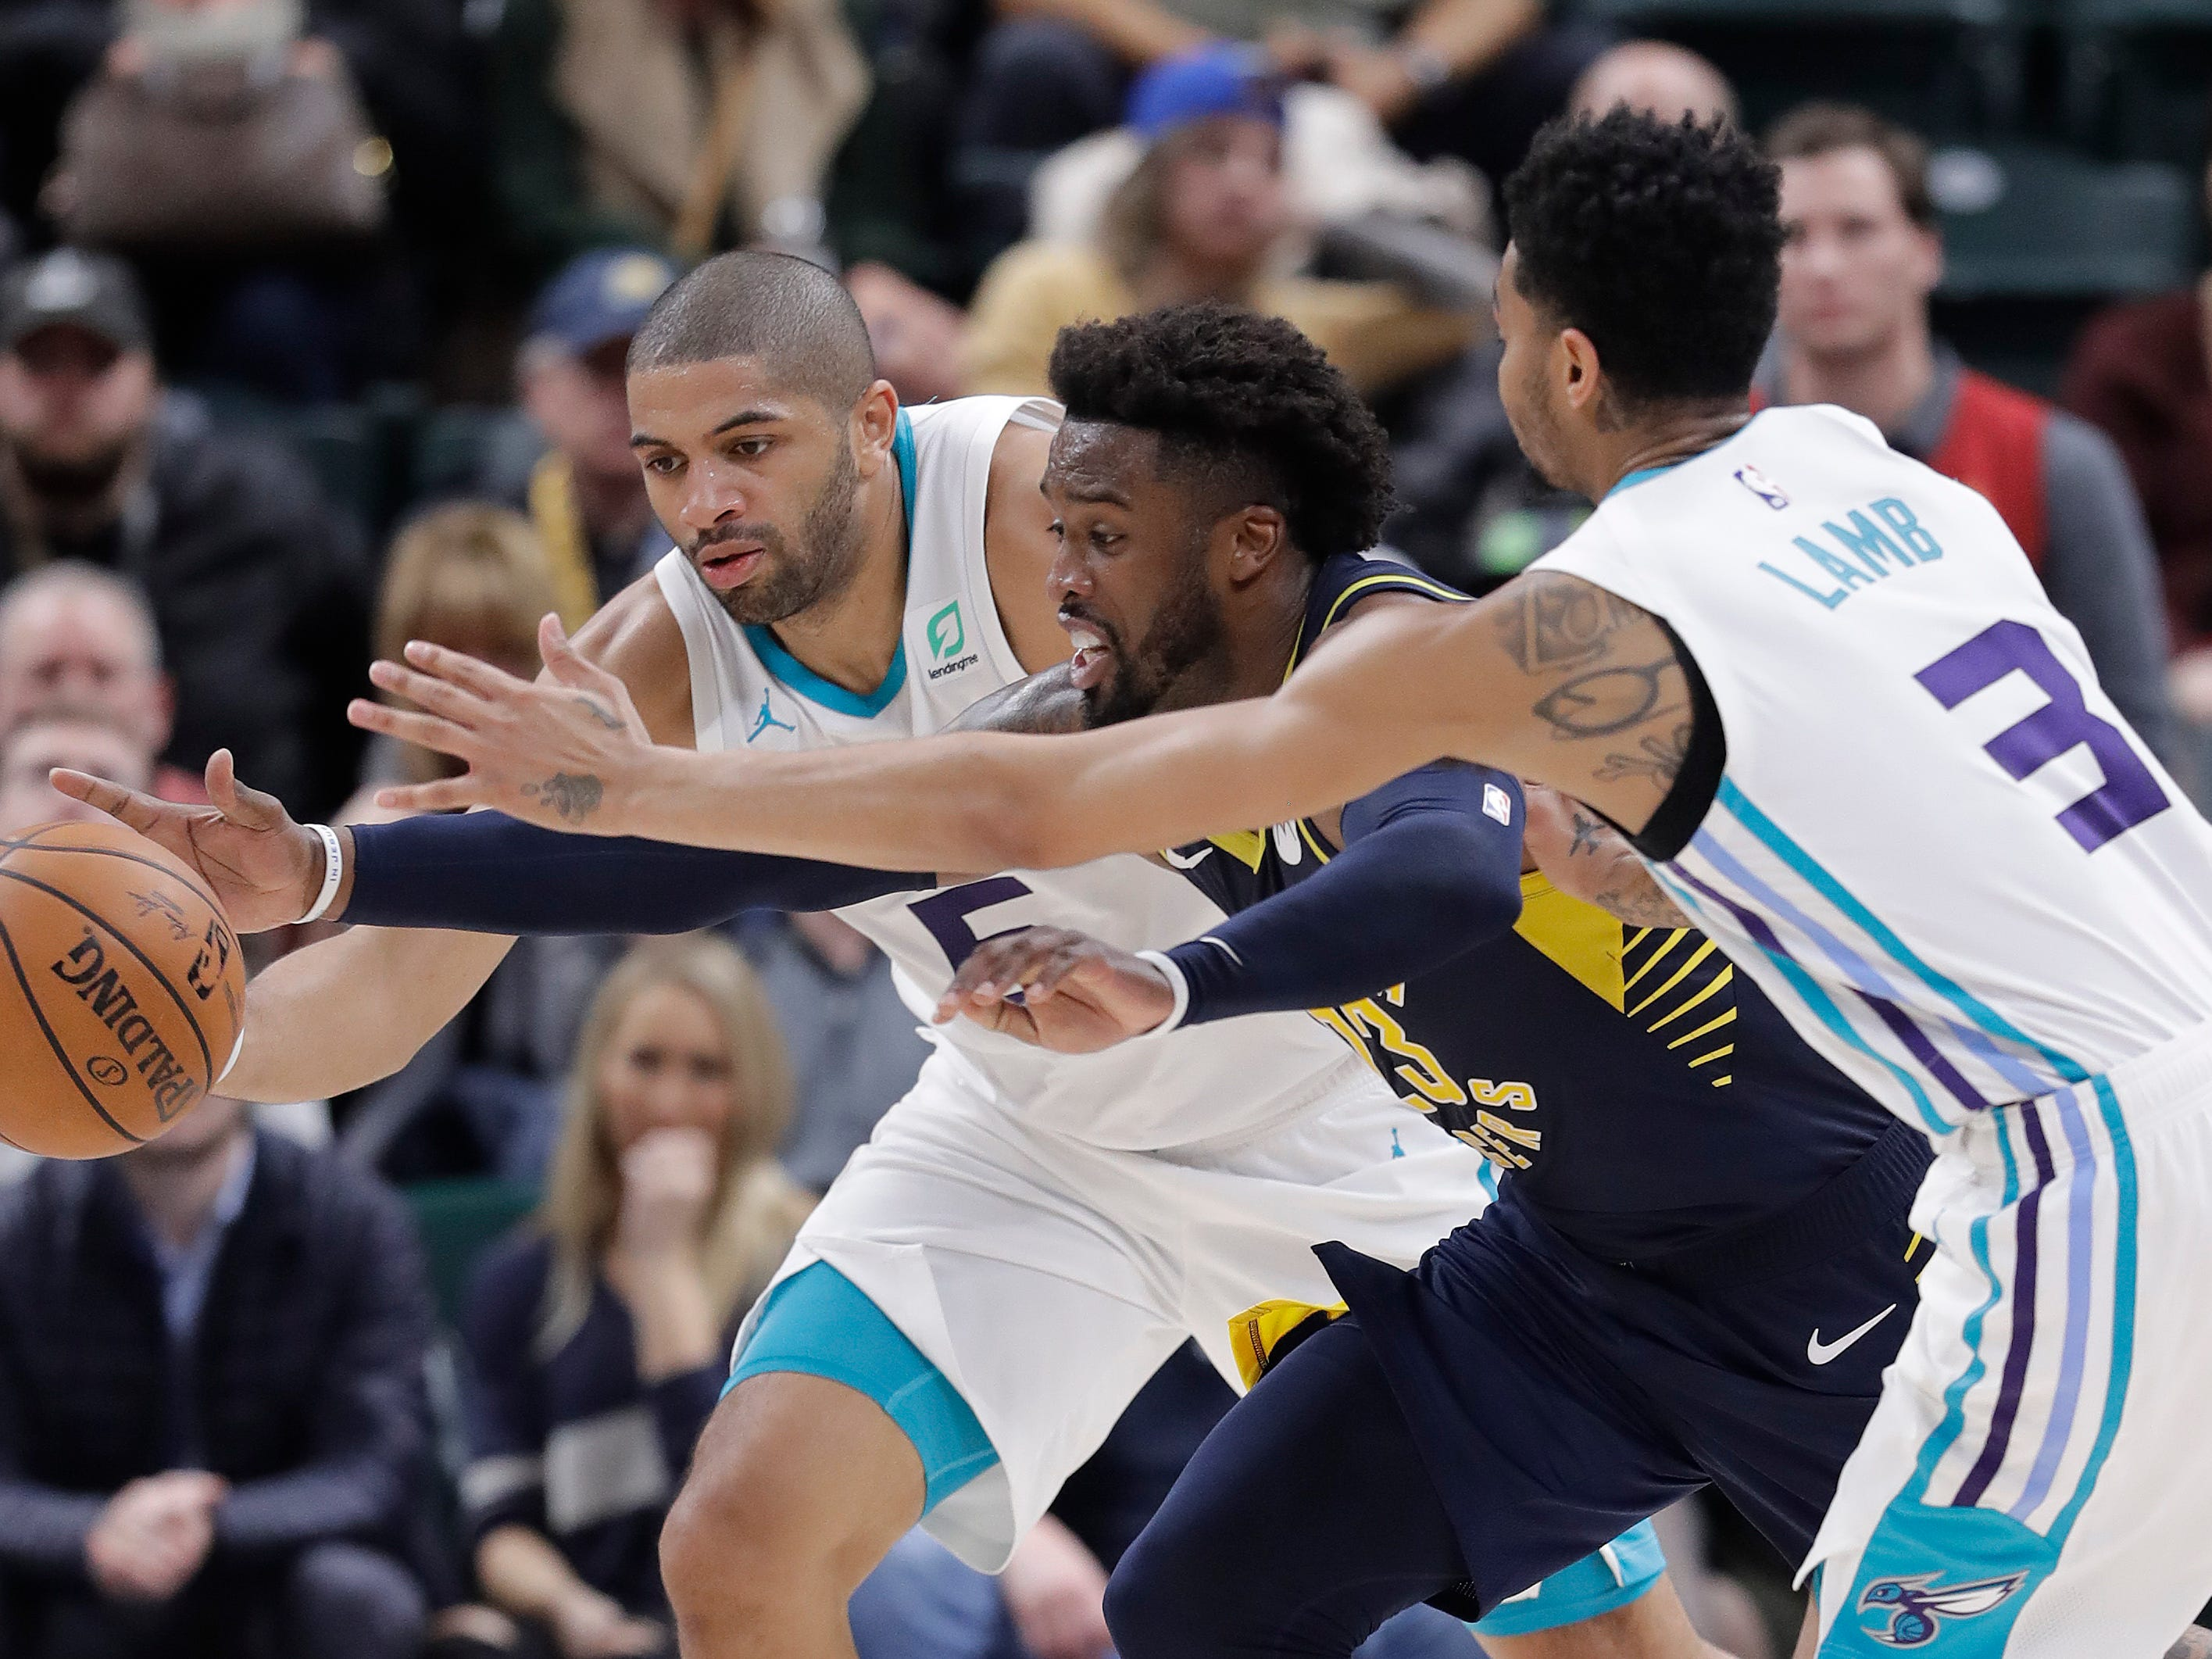 Indiana Pacers' Wesley Matthews, center, goes for a loose ball against Charlotte Hornets' Nicolas Batum, left, and Jeremy Lamb, right, during the second half of an NBA basketball game, Monday, Feb. 11, 2019, in Indianapolis. Indiana won 99-90.